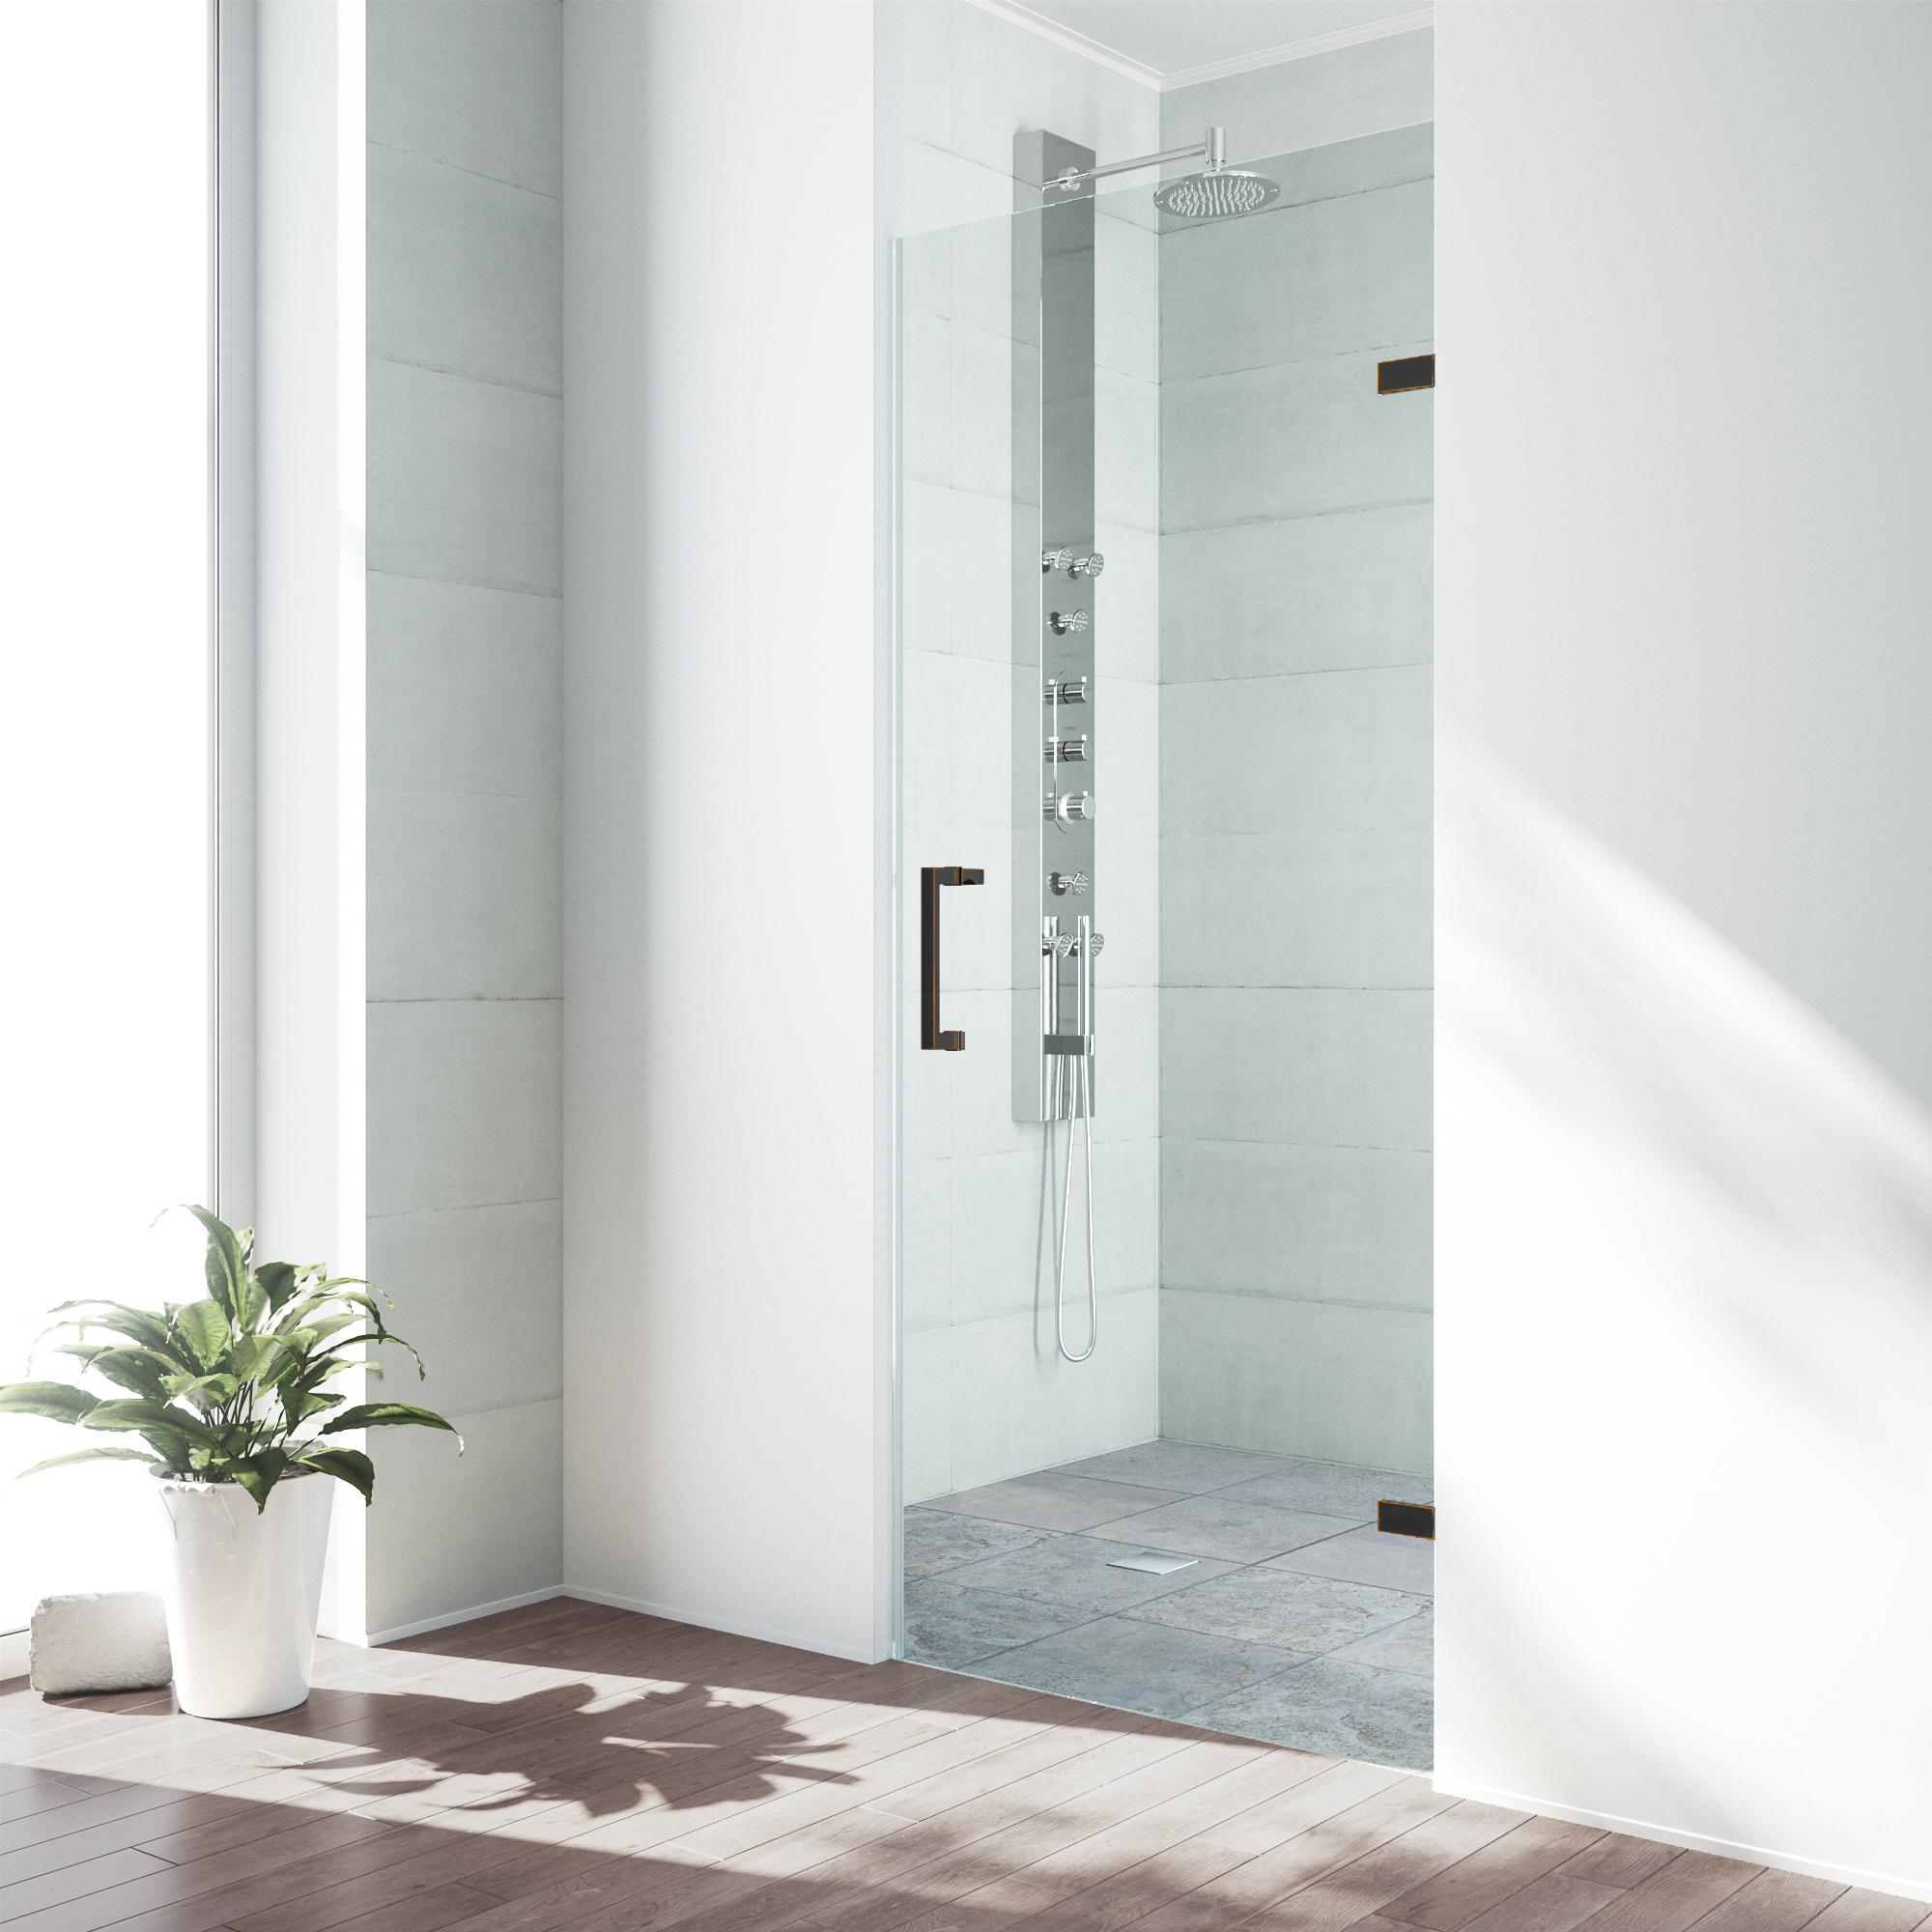 """VIGO SoHo 26"""" Adjustable Frameless Shower Door with Clear Glass and Antique Rubbed Bronze Hardware"""